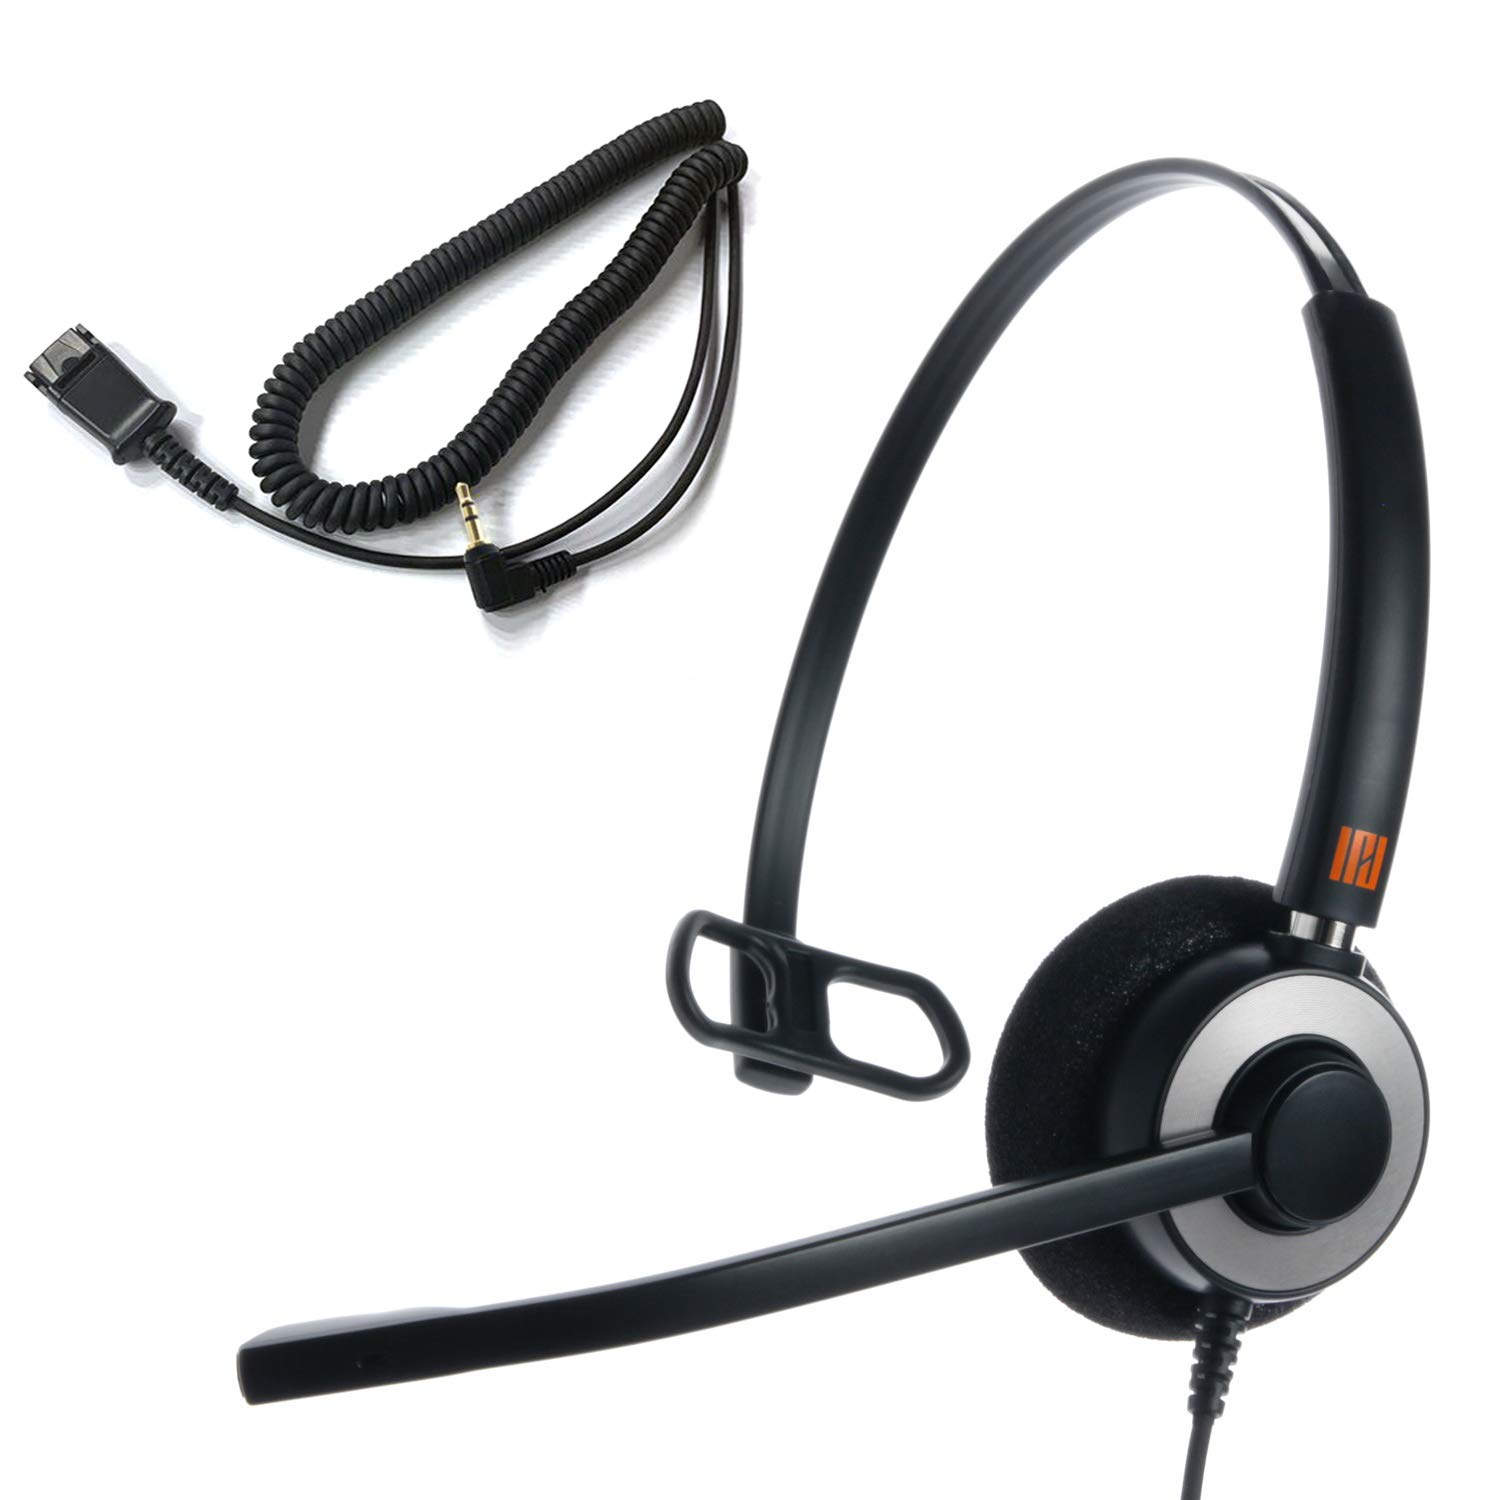 IPD IPH-160 Monaural NC Headset with 2.5mm Jack for Ciso SPA, Polycom IP 320,321,330,Panasonic KX and Other Cordless Headset with 2.5mm Headset Jack Port with Phones. No Smart Phone use.